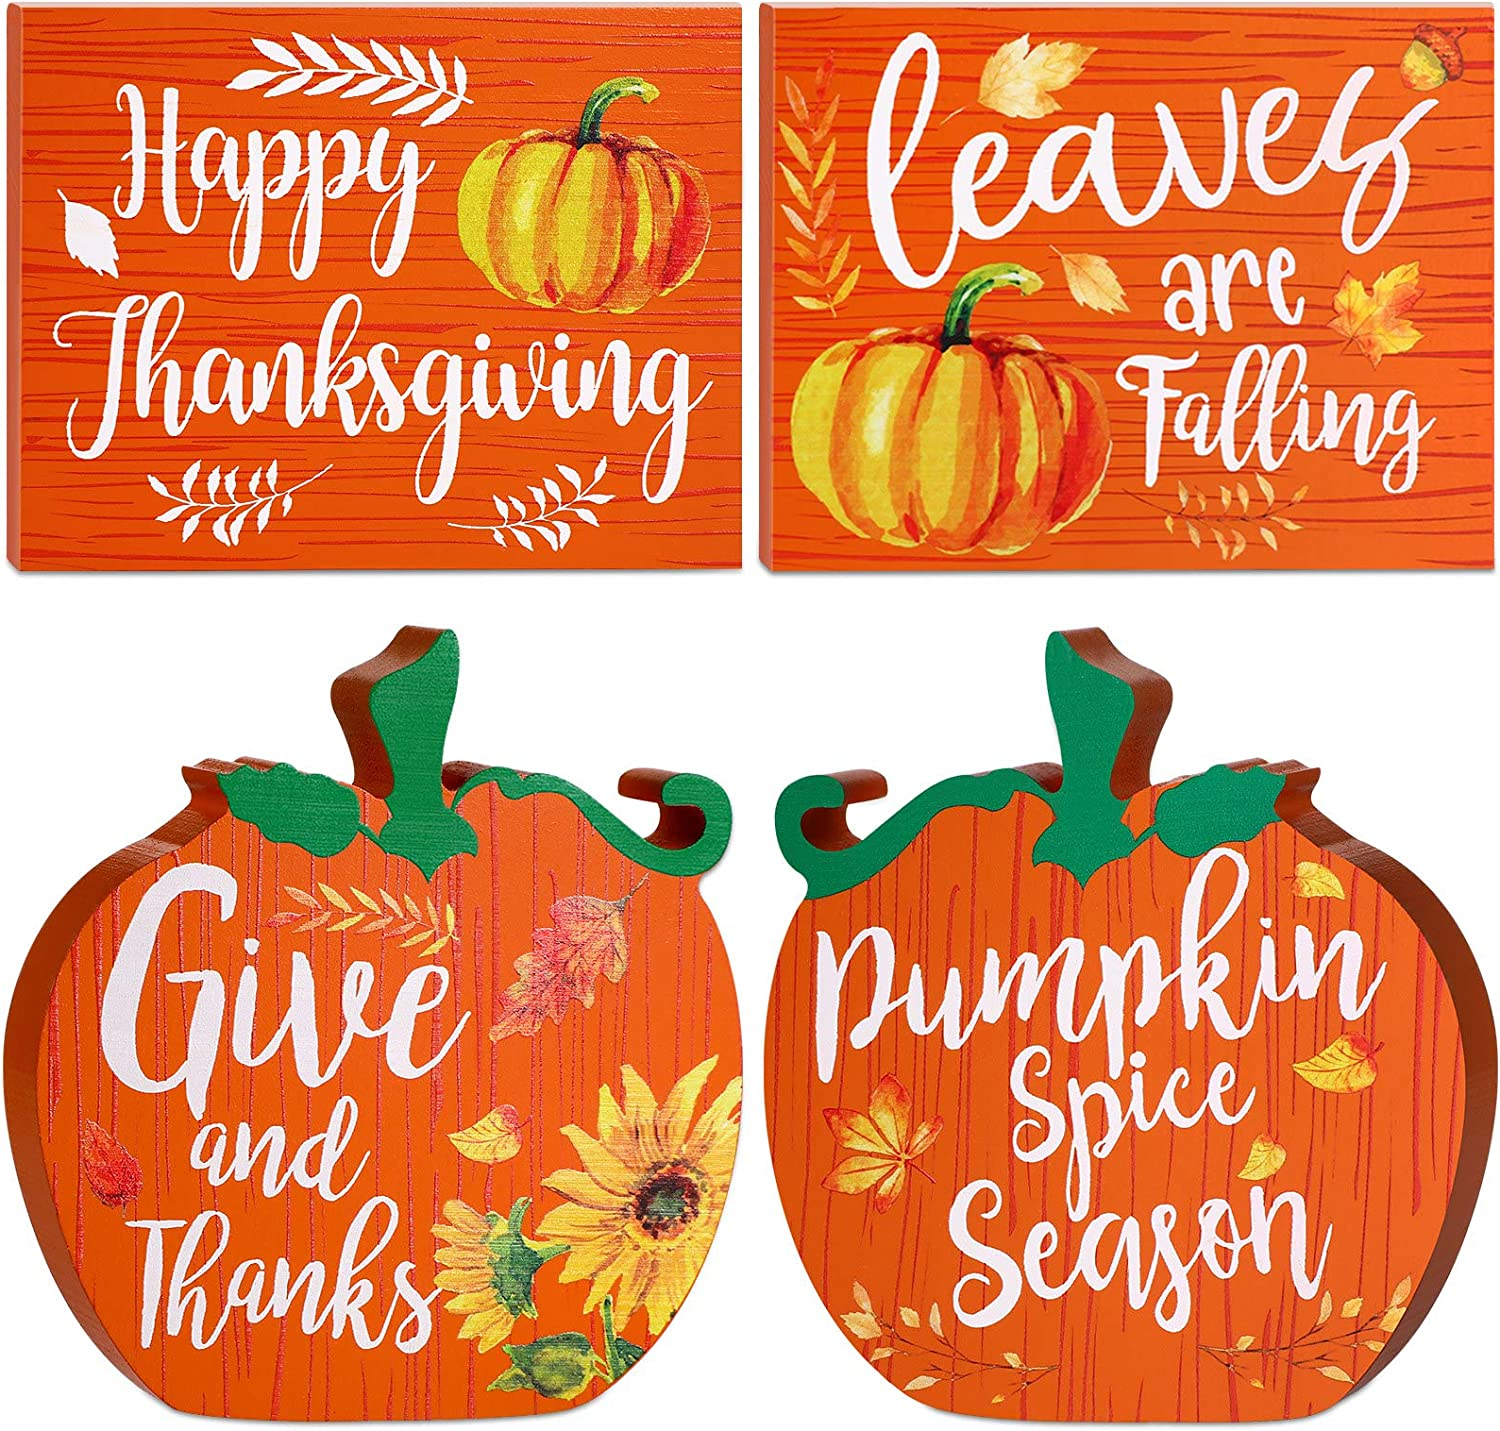 Blulu Thanksgiving Table Decorations Pumpkin Spice Table Centerpieces Tiered Tray Decorations, Double Print Fall Decor Autumn Signs Mini Kitchen Wood Ornaments Tabletop Standups, 2 Pieces